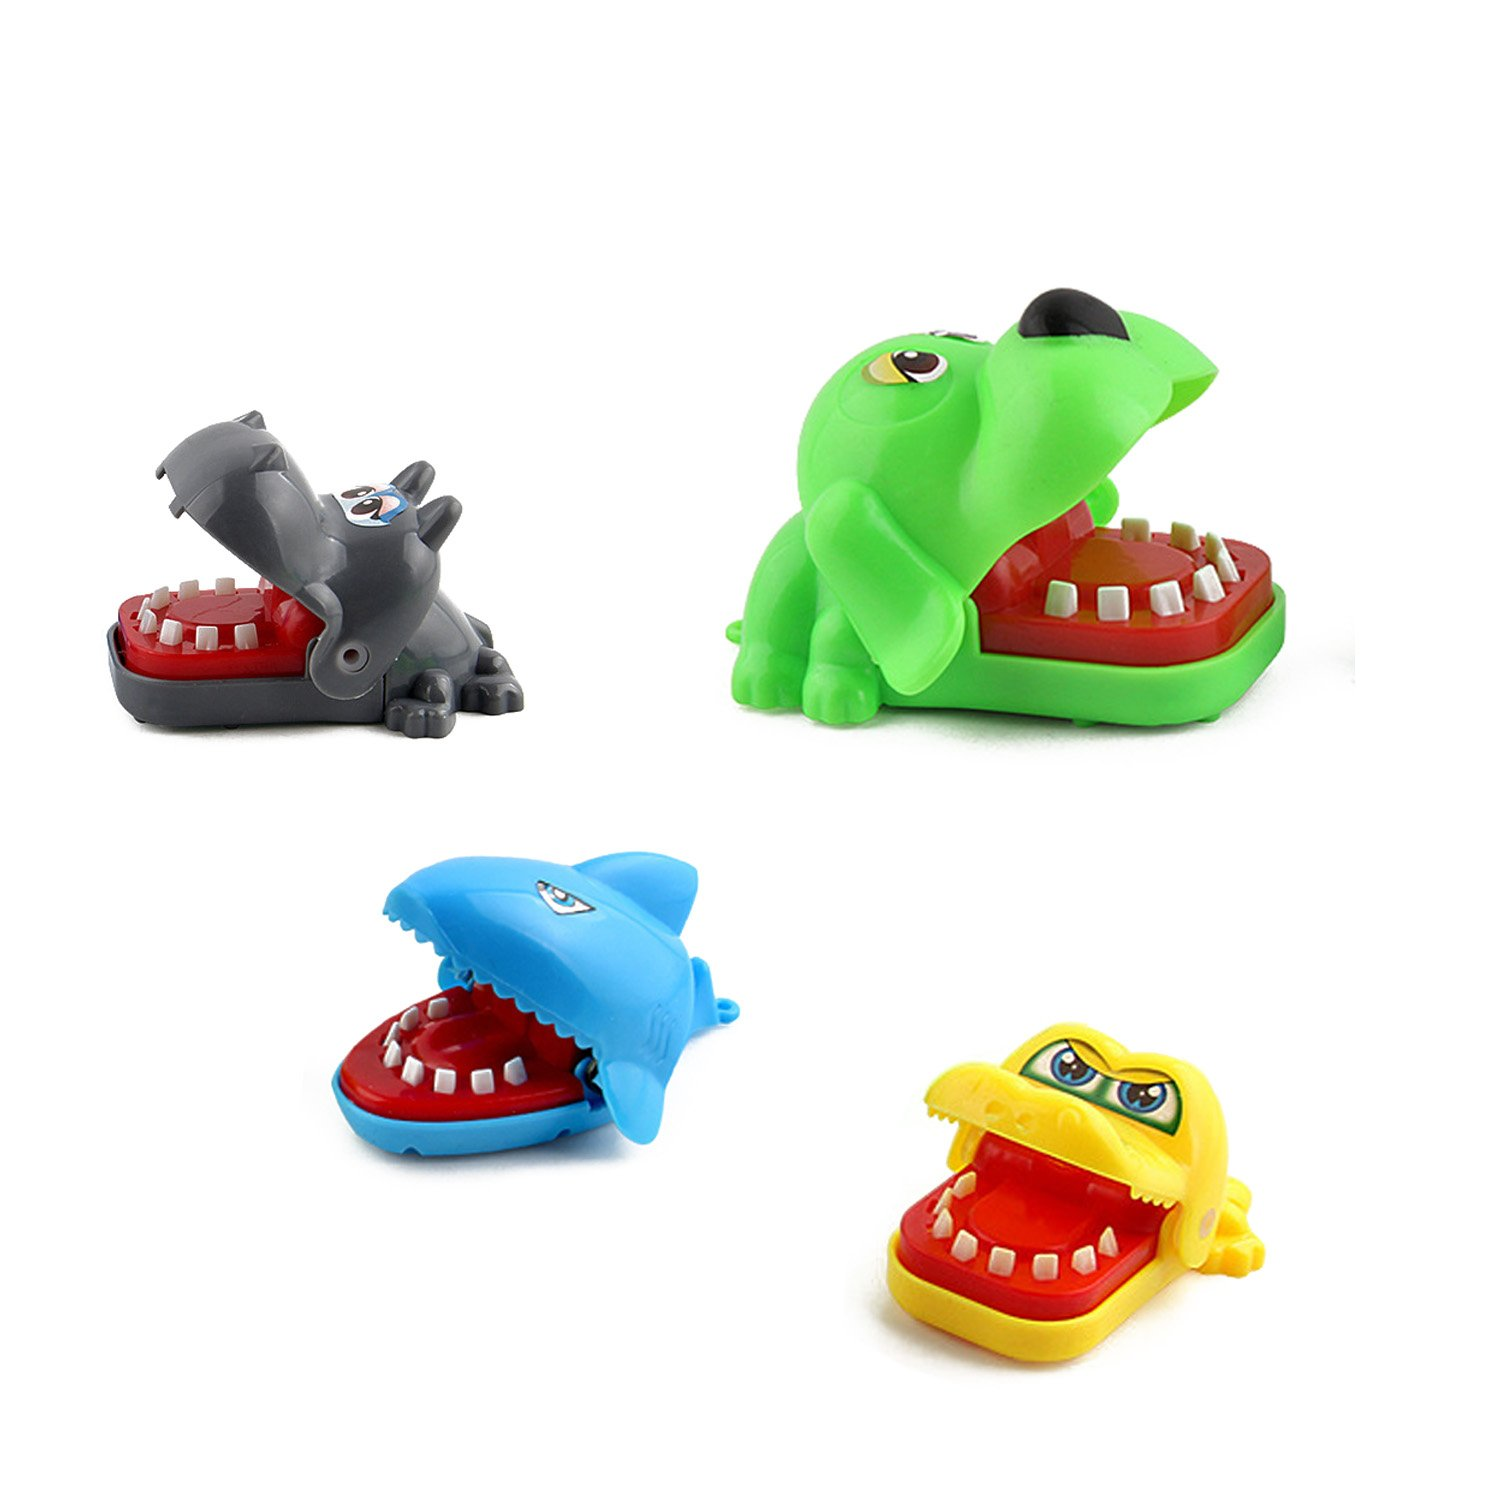 Toy Plastic New Cute Bath Kid Water Pool Baby Wind up Tub Diver Clockwork Animal (4pcs Biting Toy) kids bath toys